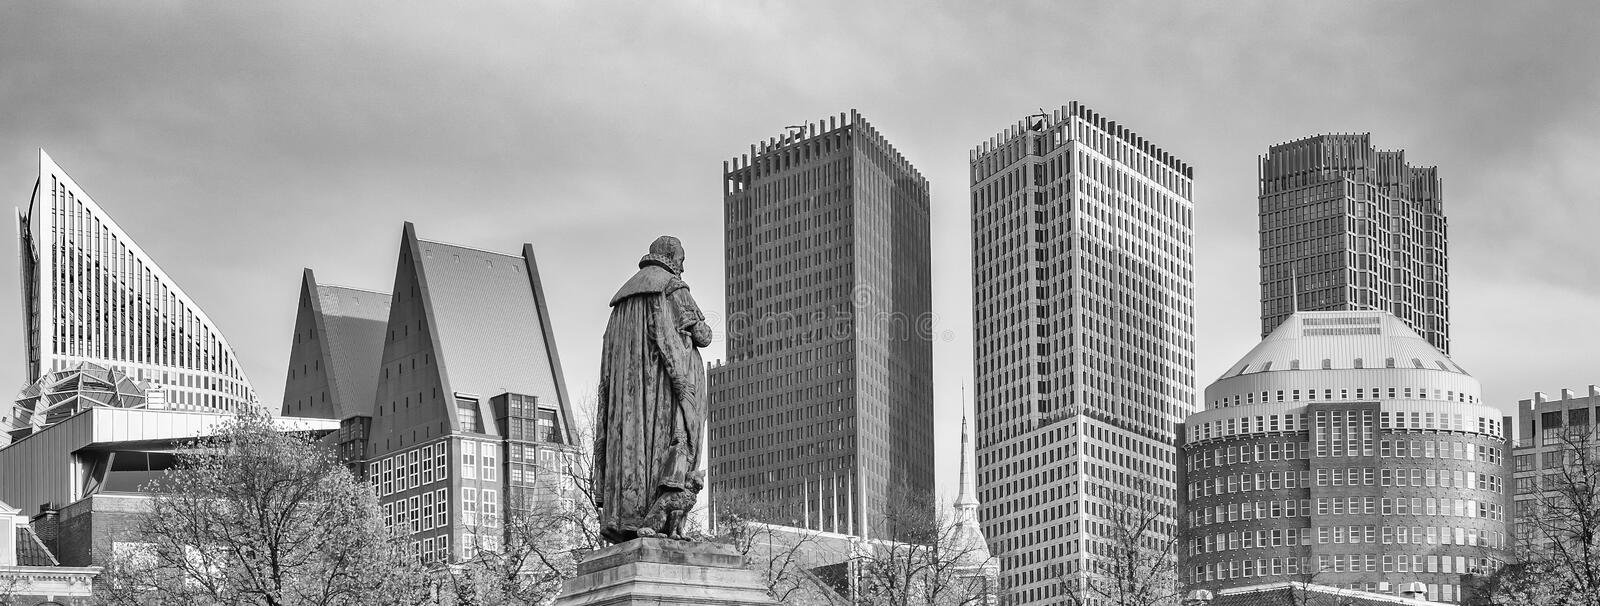 Panorama photo of the statue of William vam Orange on het Plein in the Hague with the sky-line in the background in black and whit. Panoramaphoto of the statue stock image